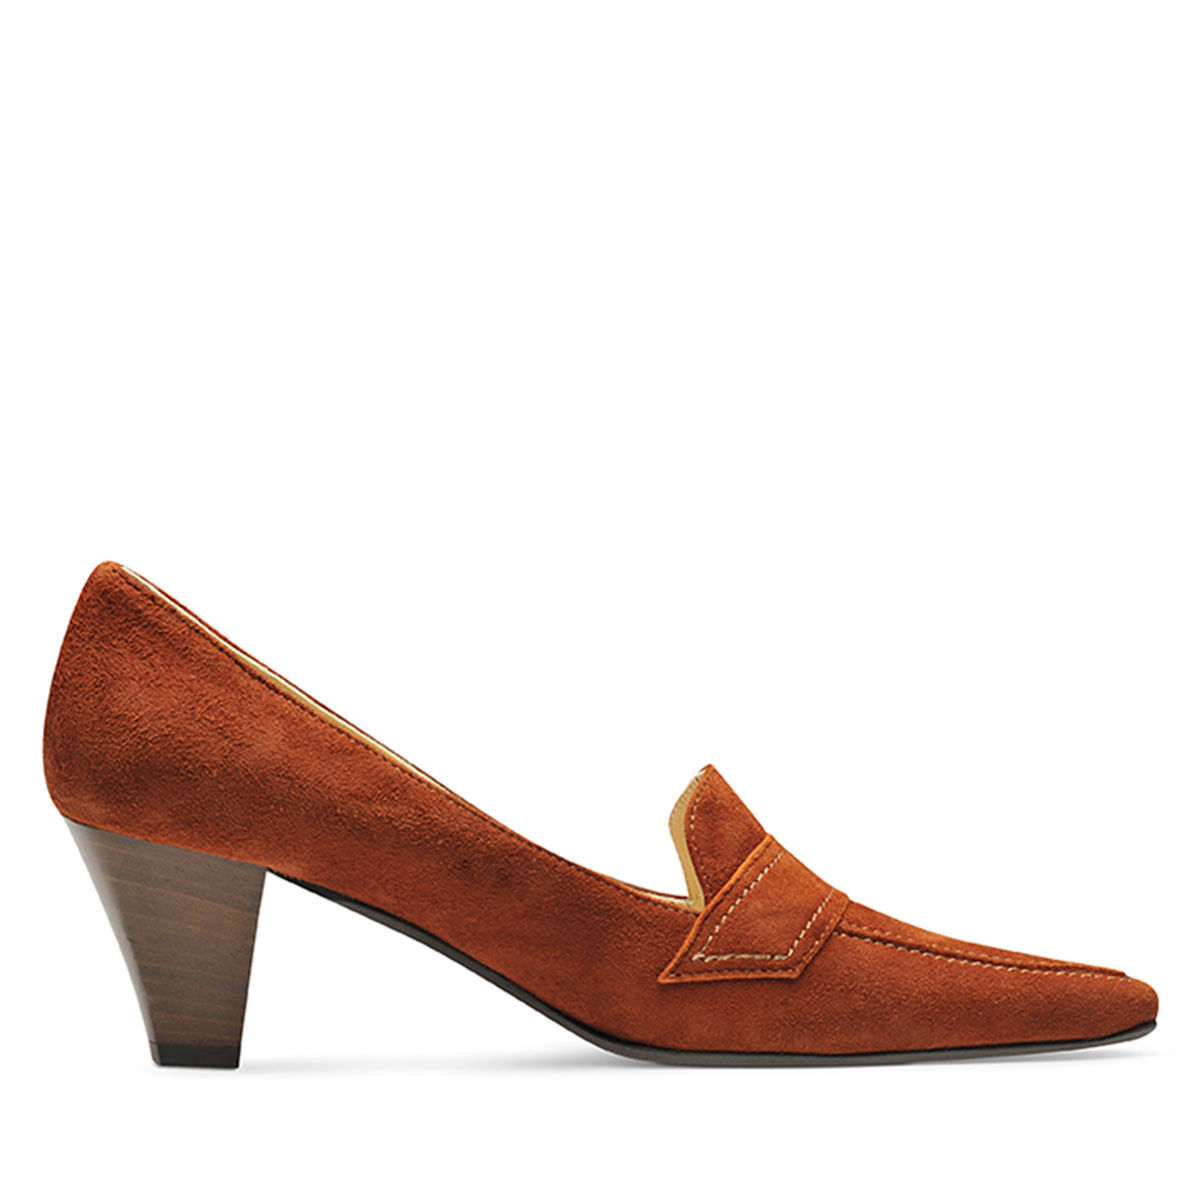 Evita »PATRIZIA« Pumps, orange, orange